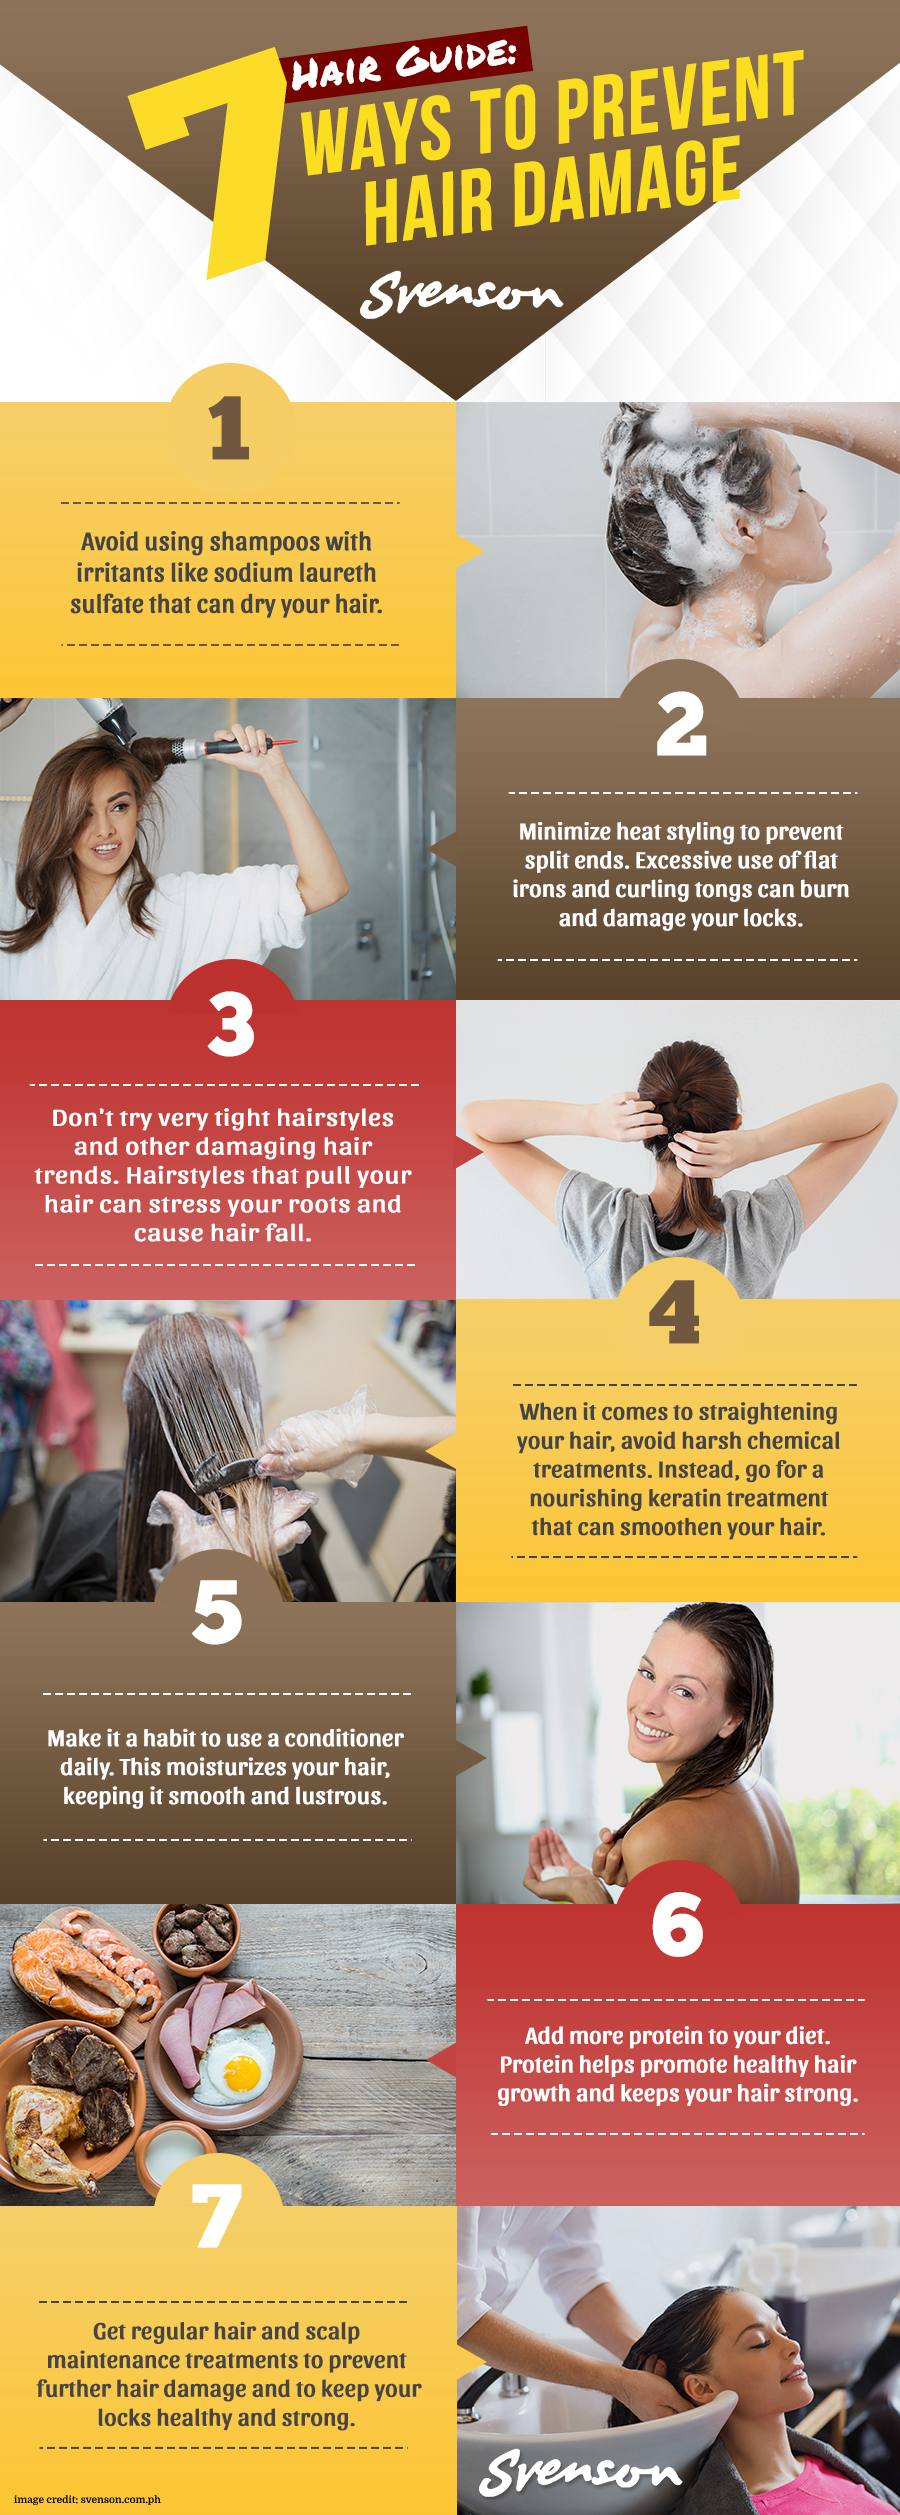 How To Prevent Hair Loss And Regrow Hair Naturally